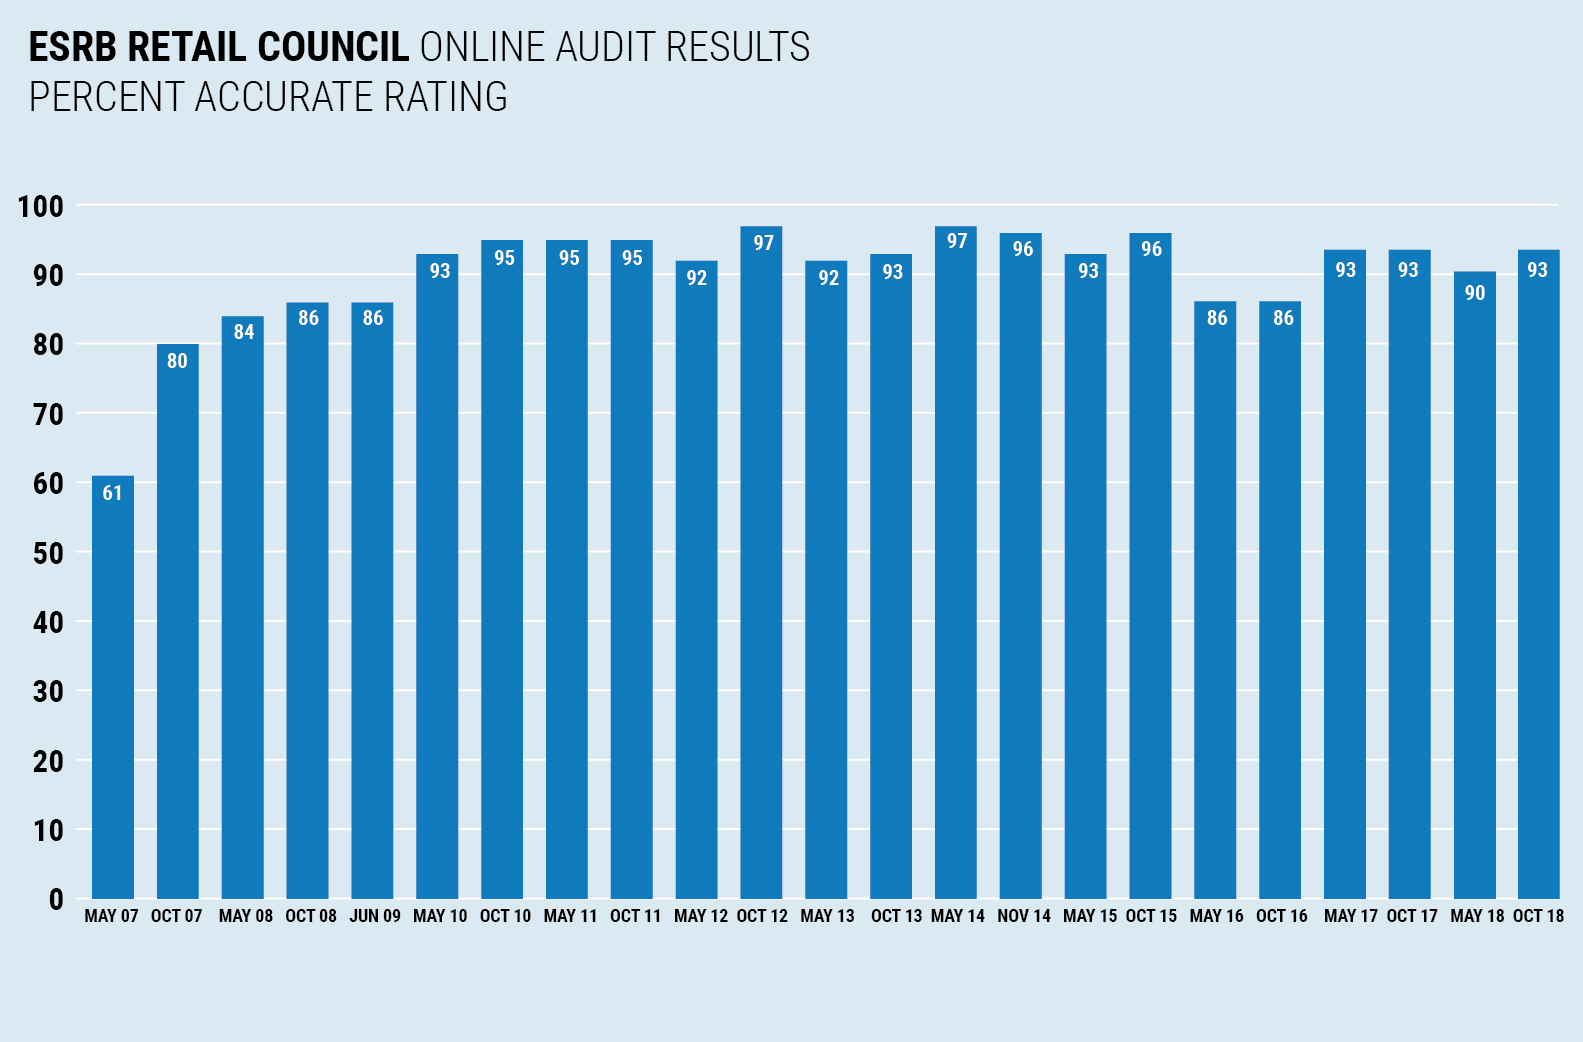 ESRB Retail Council Online Audit Results